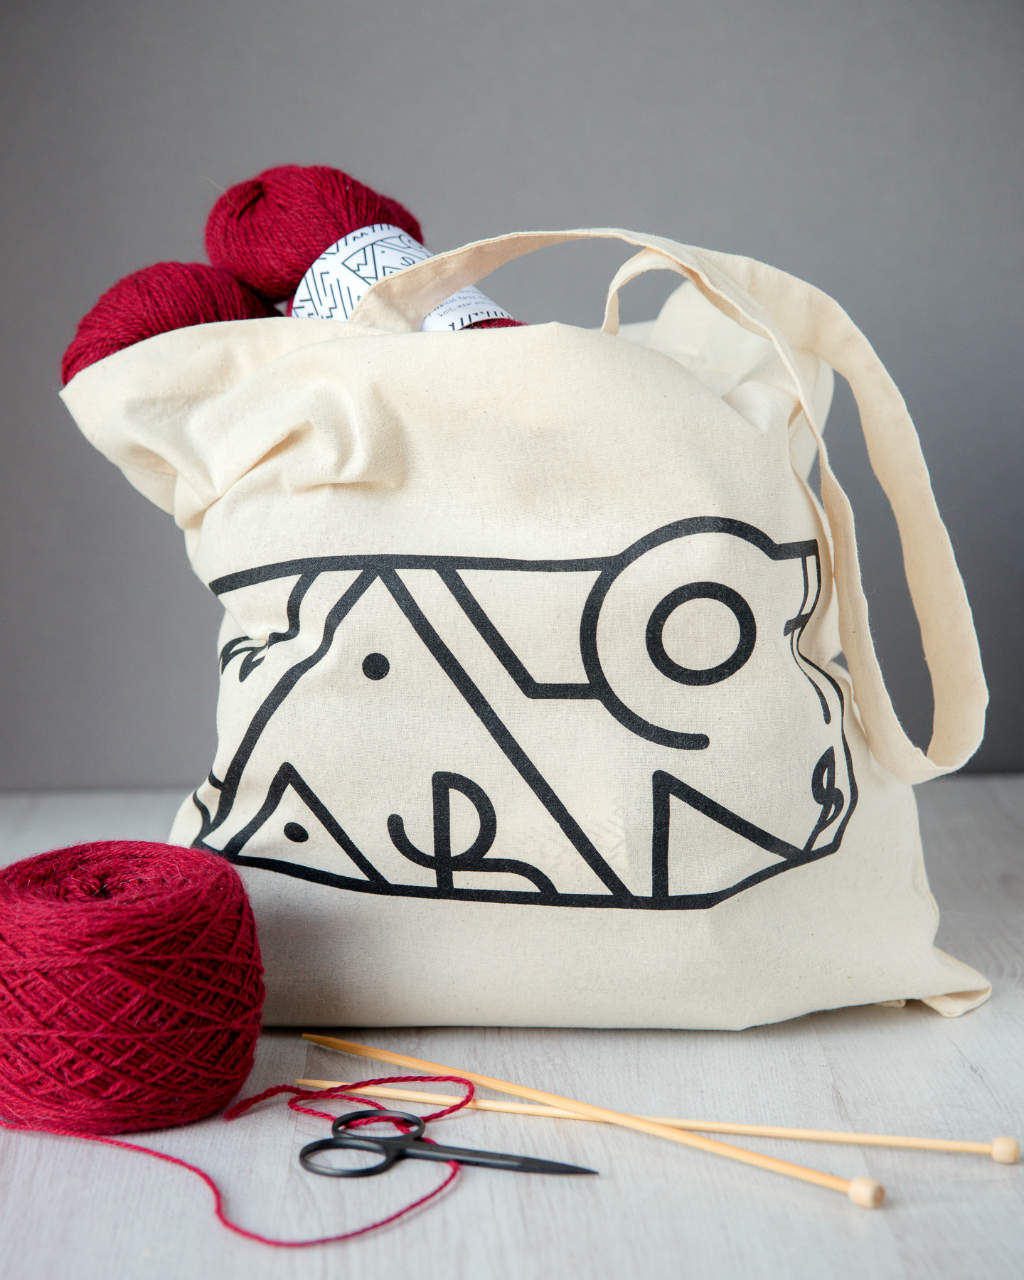 Walcot Yarns Cotton Tote